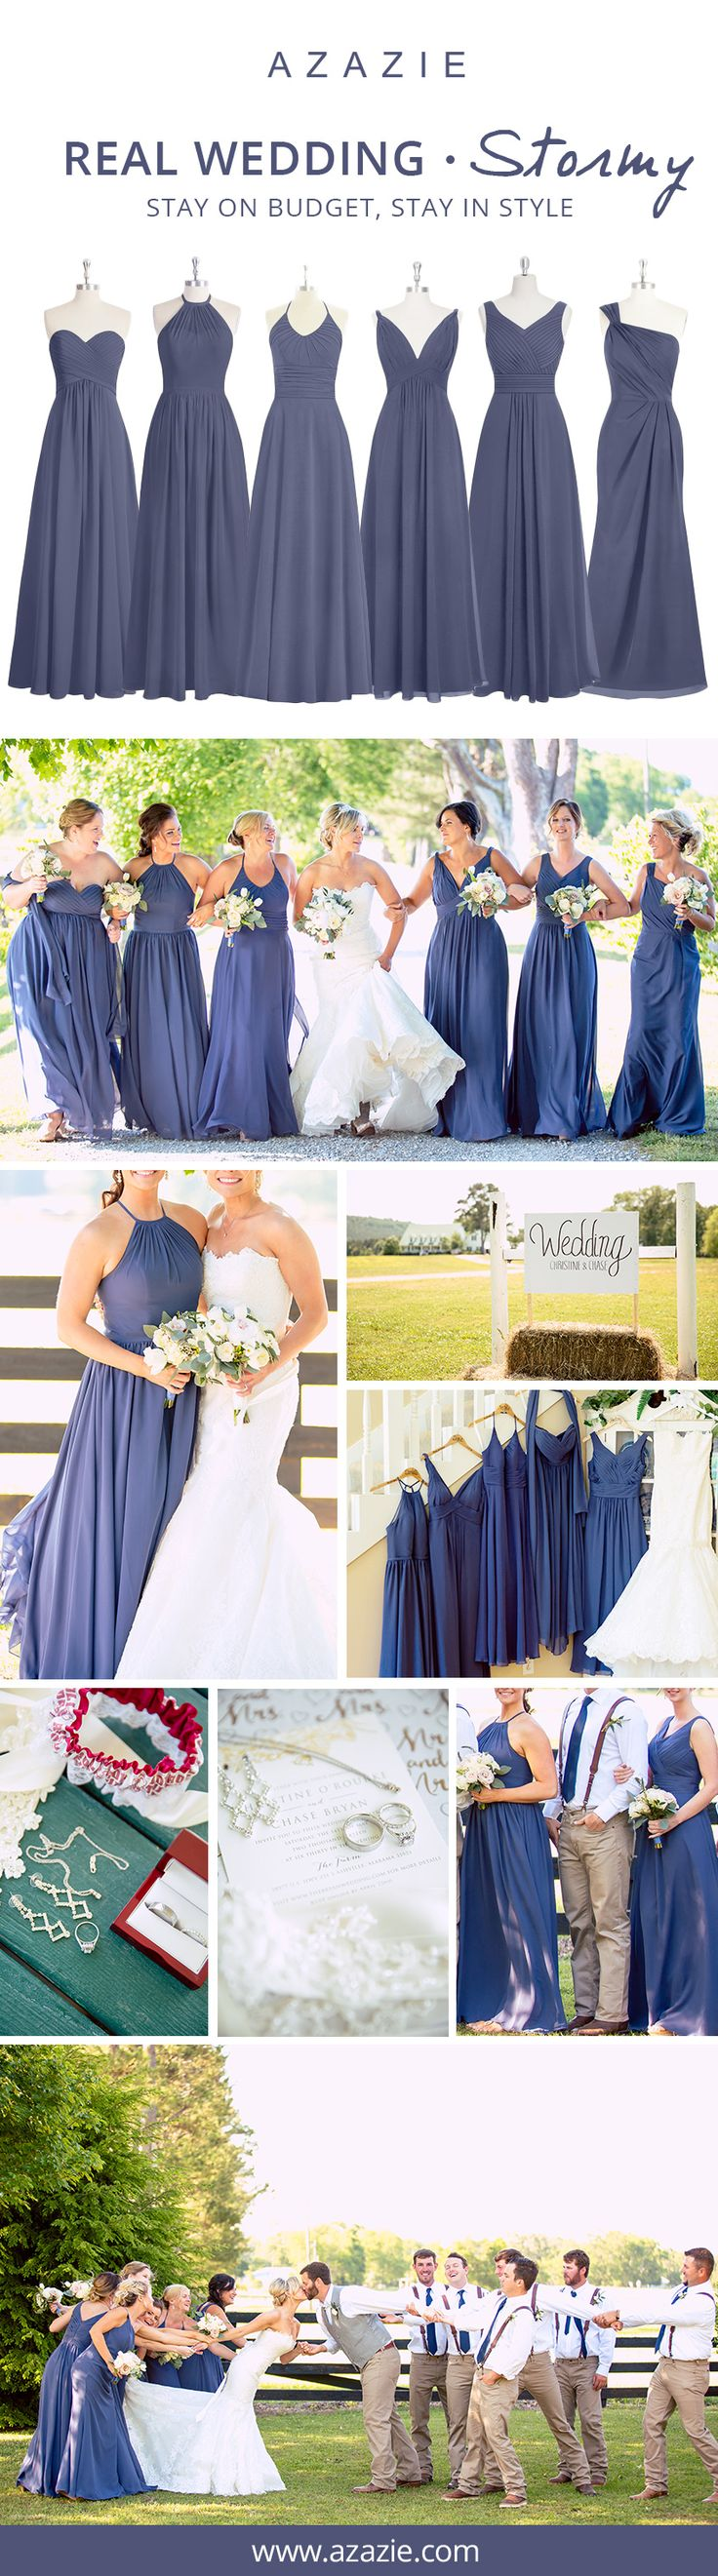 Best 25 different bridesmaid dresses ideas on pinterest navy stormy is the way to steal the show on your wedding day let your bridesmaids personalities shine and mix n match your bridesmaid dresses mix colors ombrellifo Images